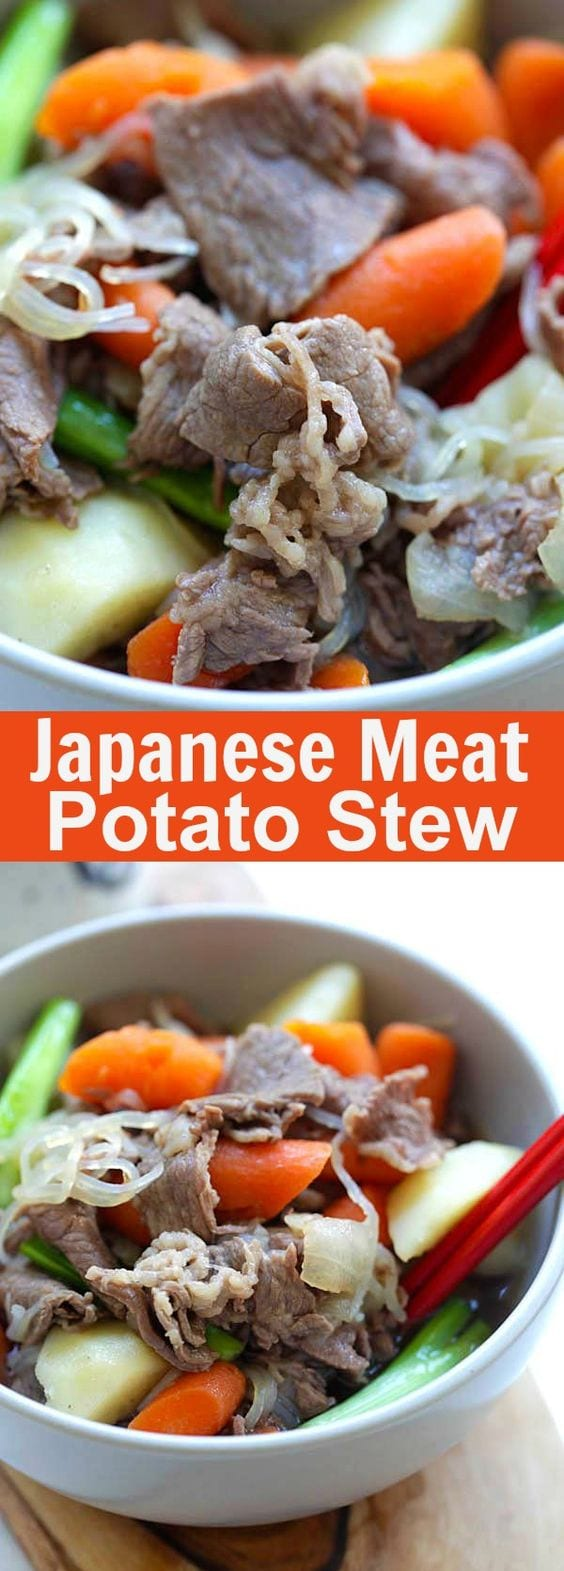 Japanese Meat and Potato Stew (Nikujaga) – hearty stew with meat and potatoes. This Japanese comfort food is delicious for colder months | rasamalaysia.com